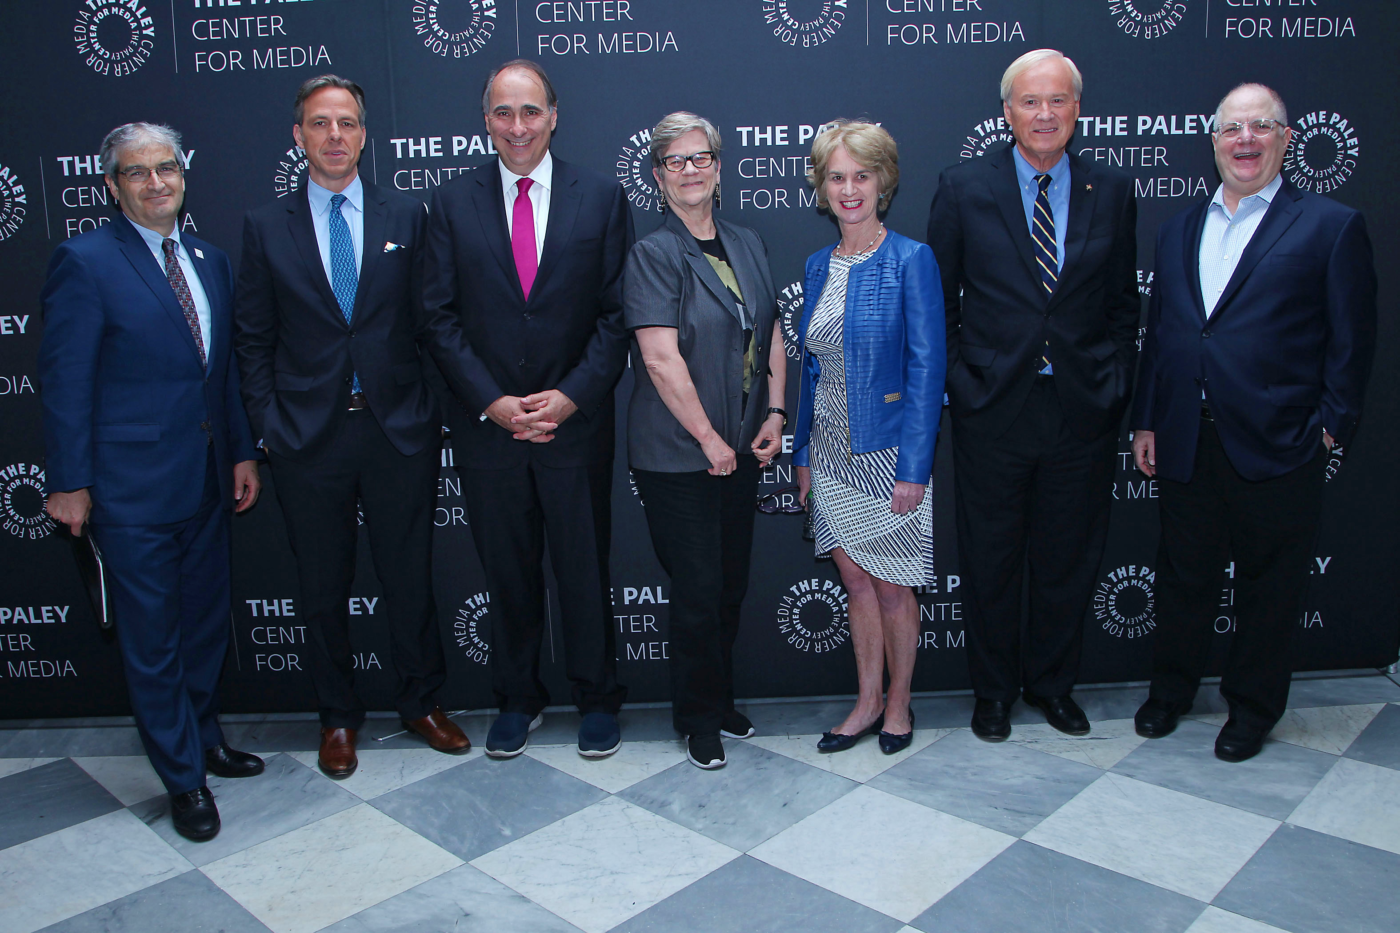 Left to right: JFK Library Foundation Executive Director Steven M. Rothstein, Jake Tapper, David Axelrod, Kathleen Hall Jamieson, Kathleen Kennedy Townsend, Chris Matthews, and Frank Rich. Credit: Kristina Bumphrey/StarPix.